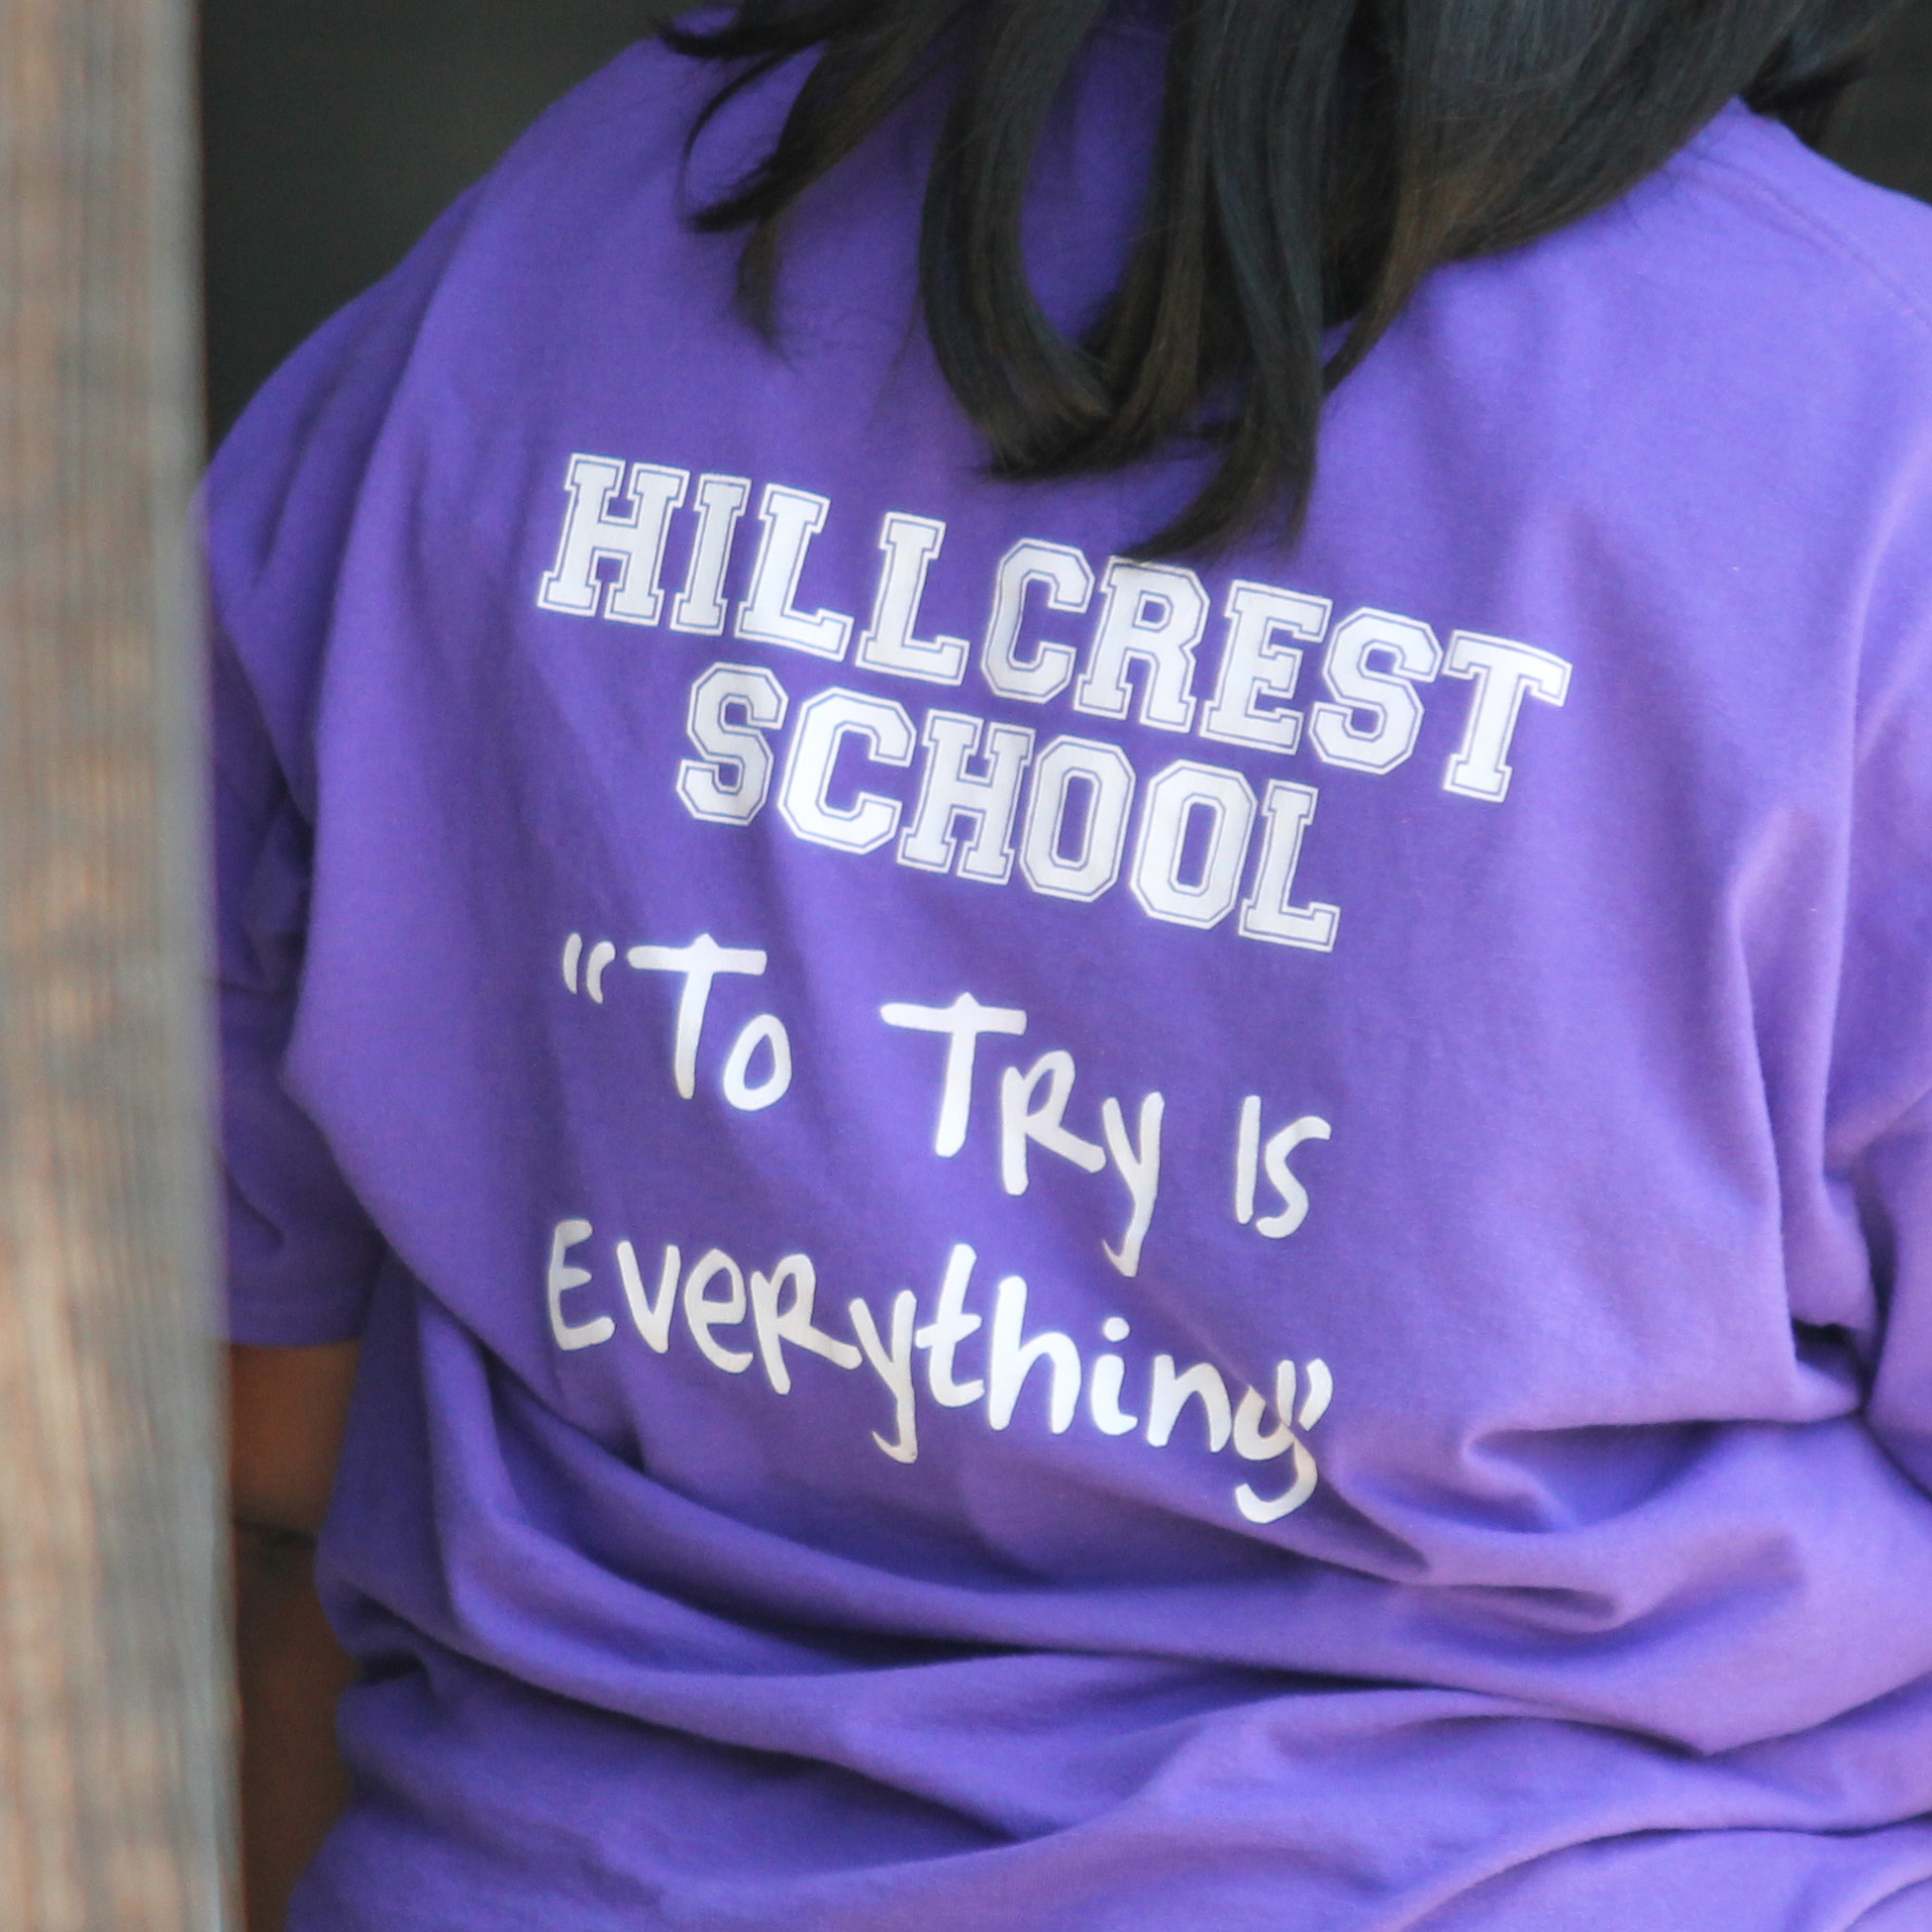 Join the Hillcrest Funding Drive